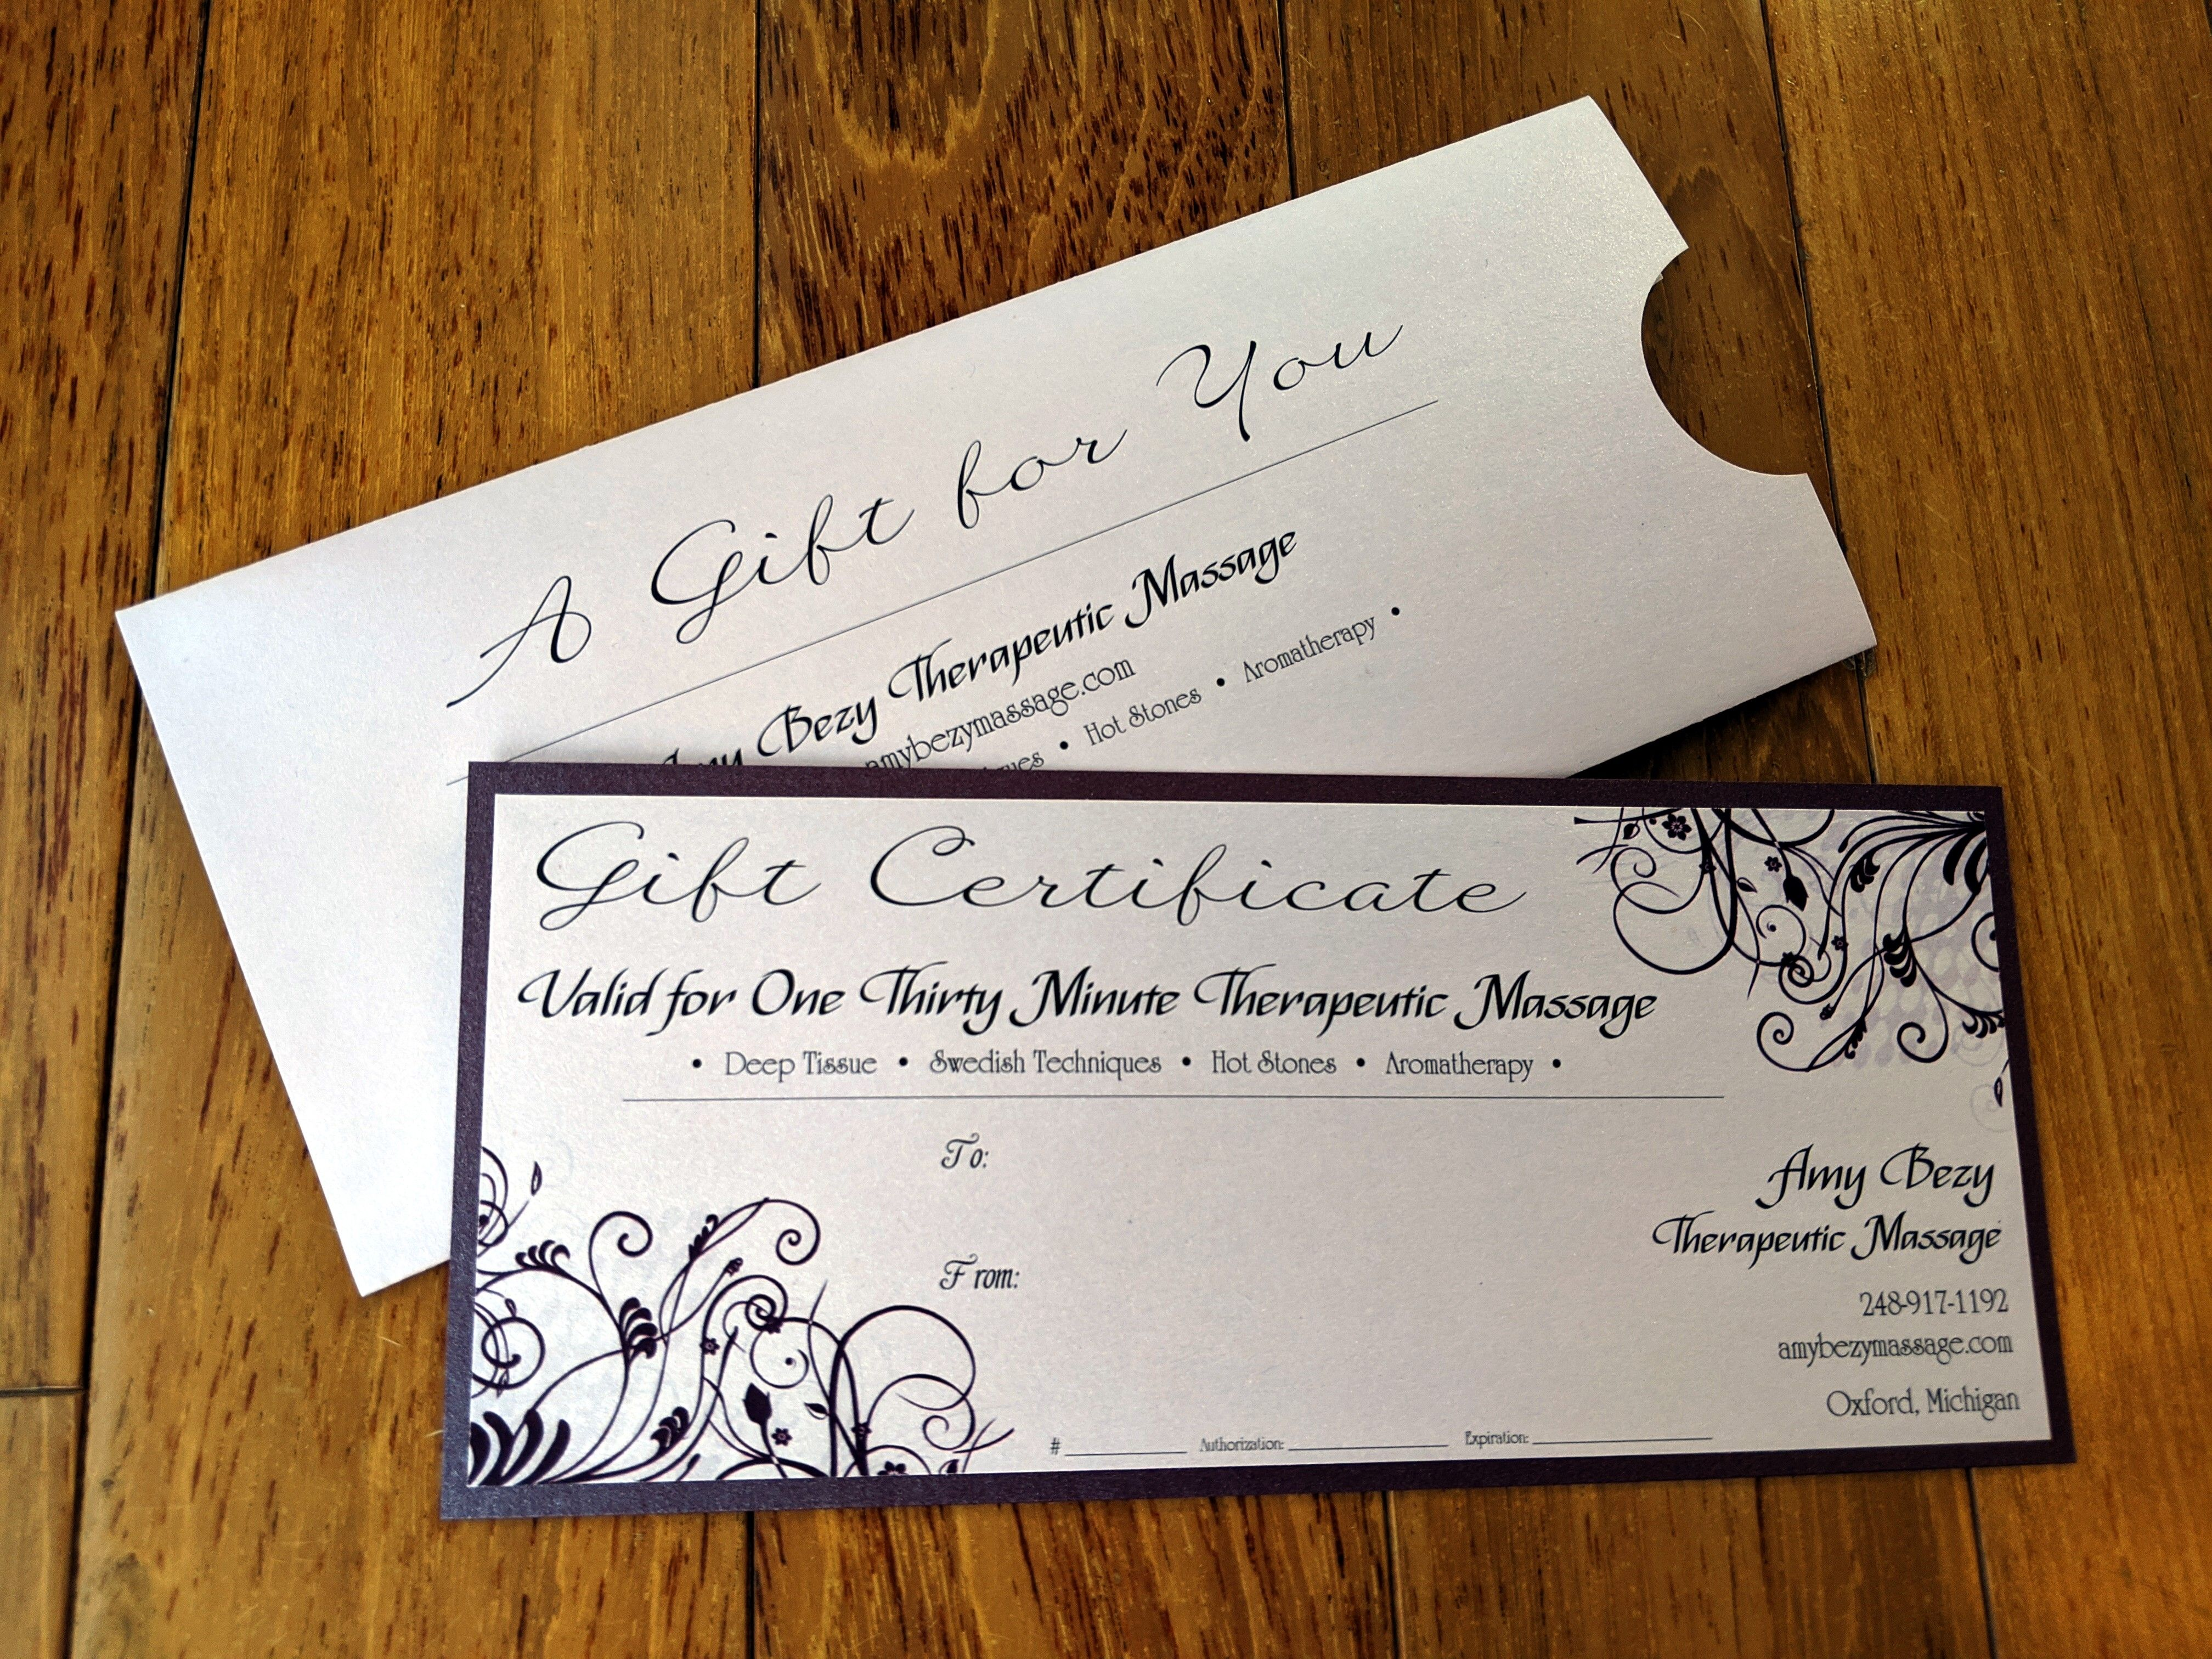 certificates certificate envelope customized gifts names programs